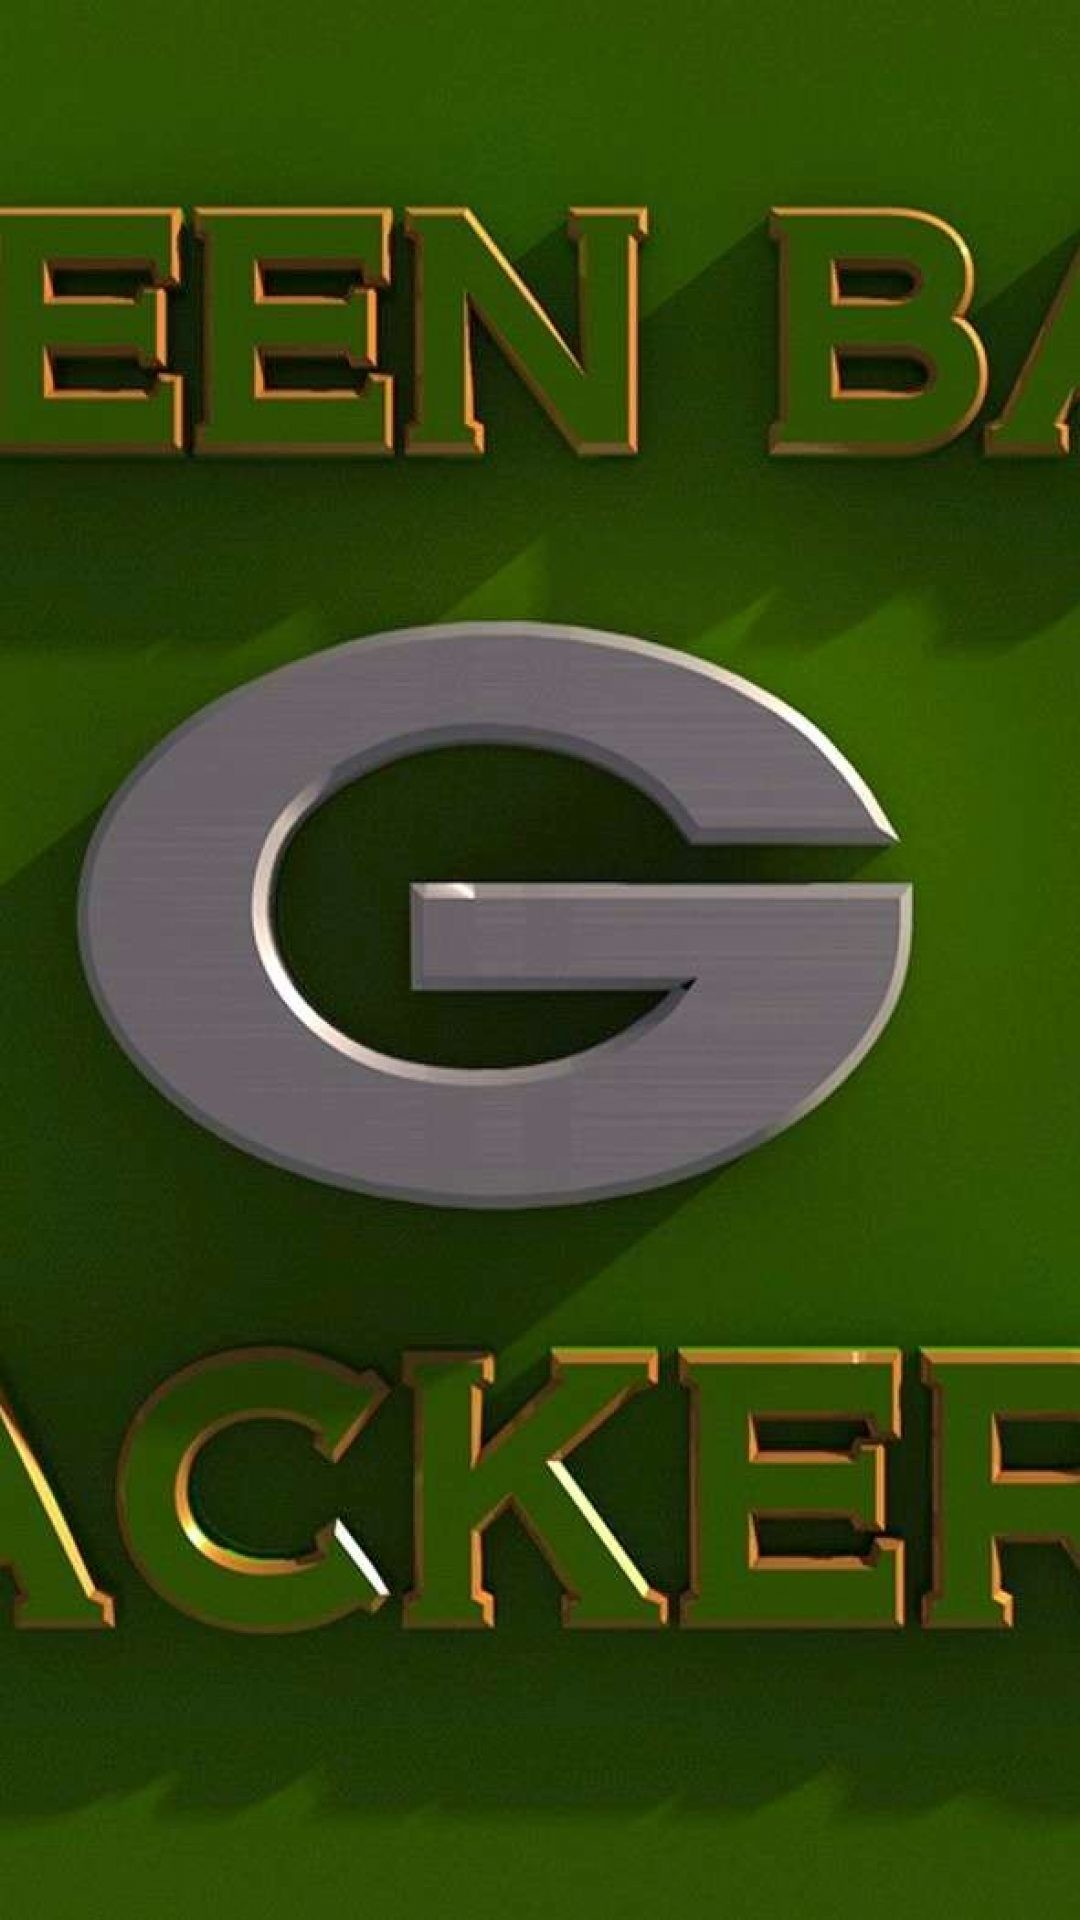 3840x2160 Green Bay Packers Iphone Wallpaper